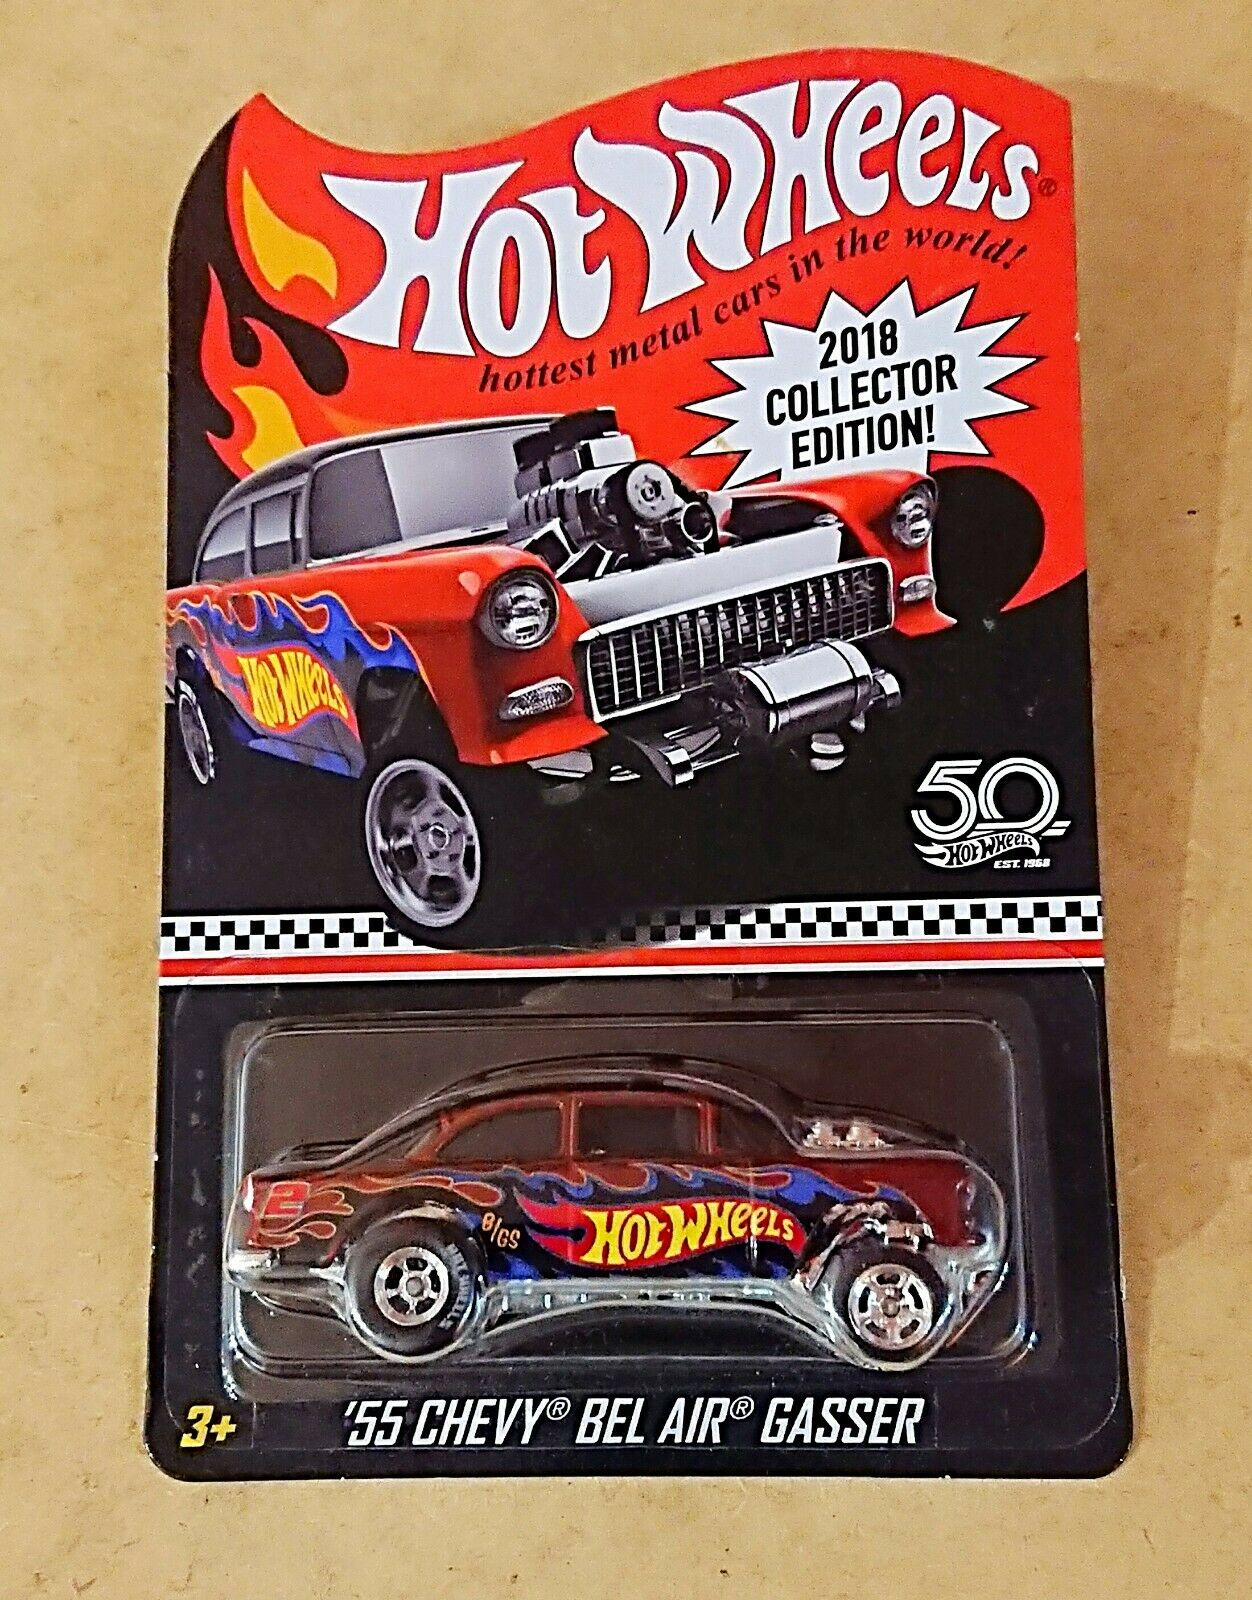 2018 Hot Wheels K MART COLLECTOR EDITION MAIL In. 55 CHEVY BEL AIR GASSER